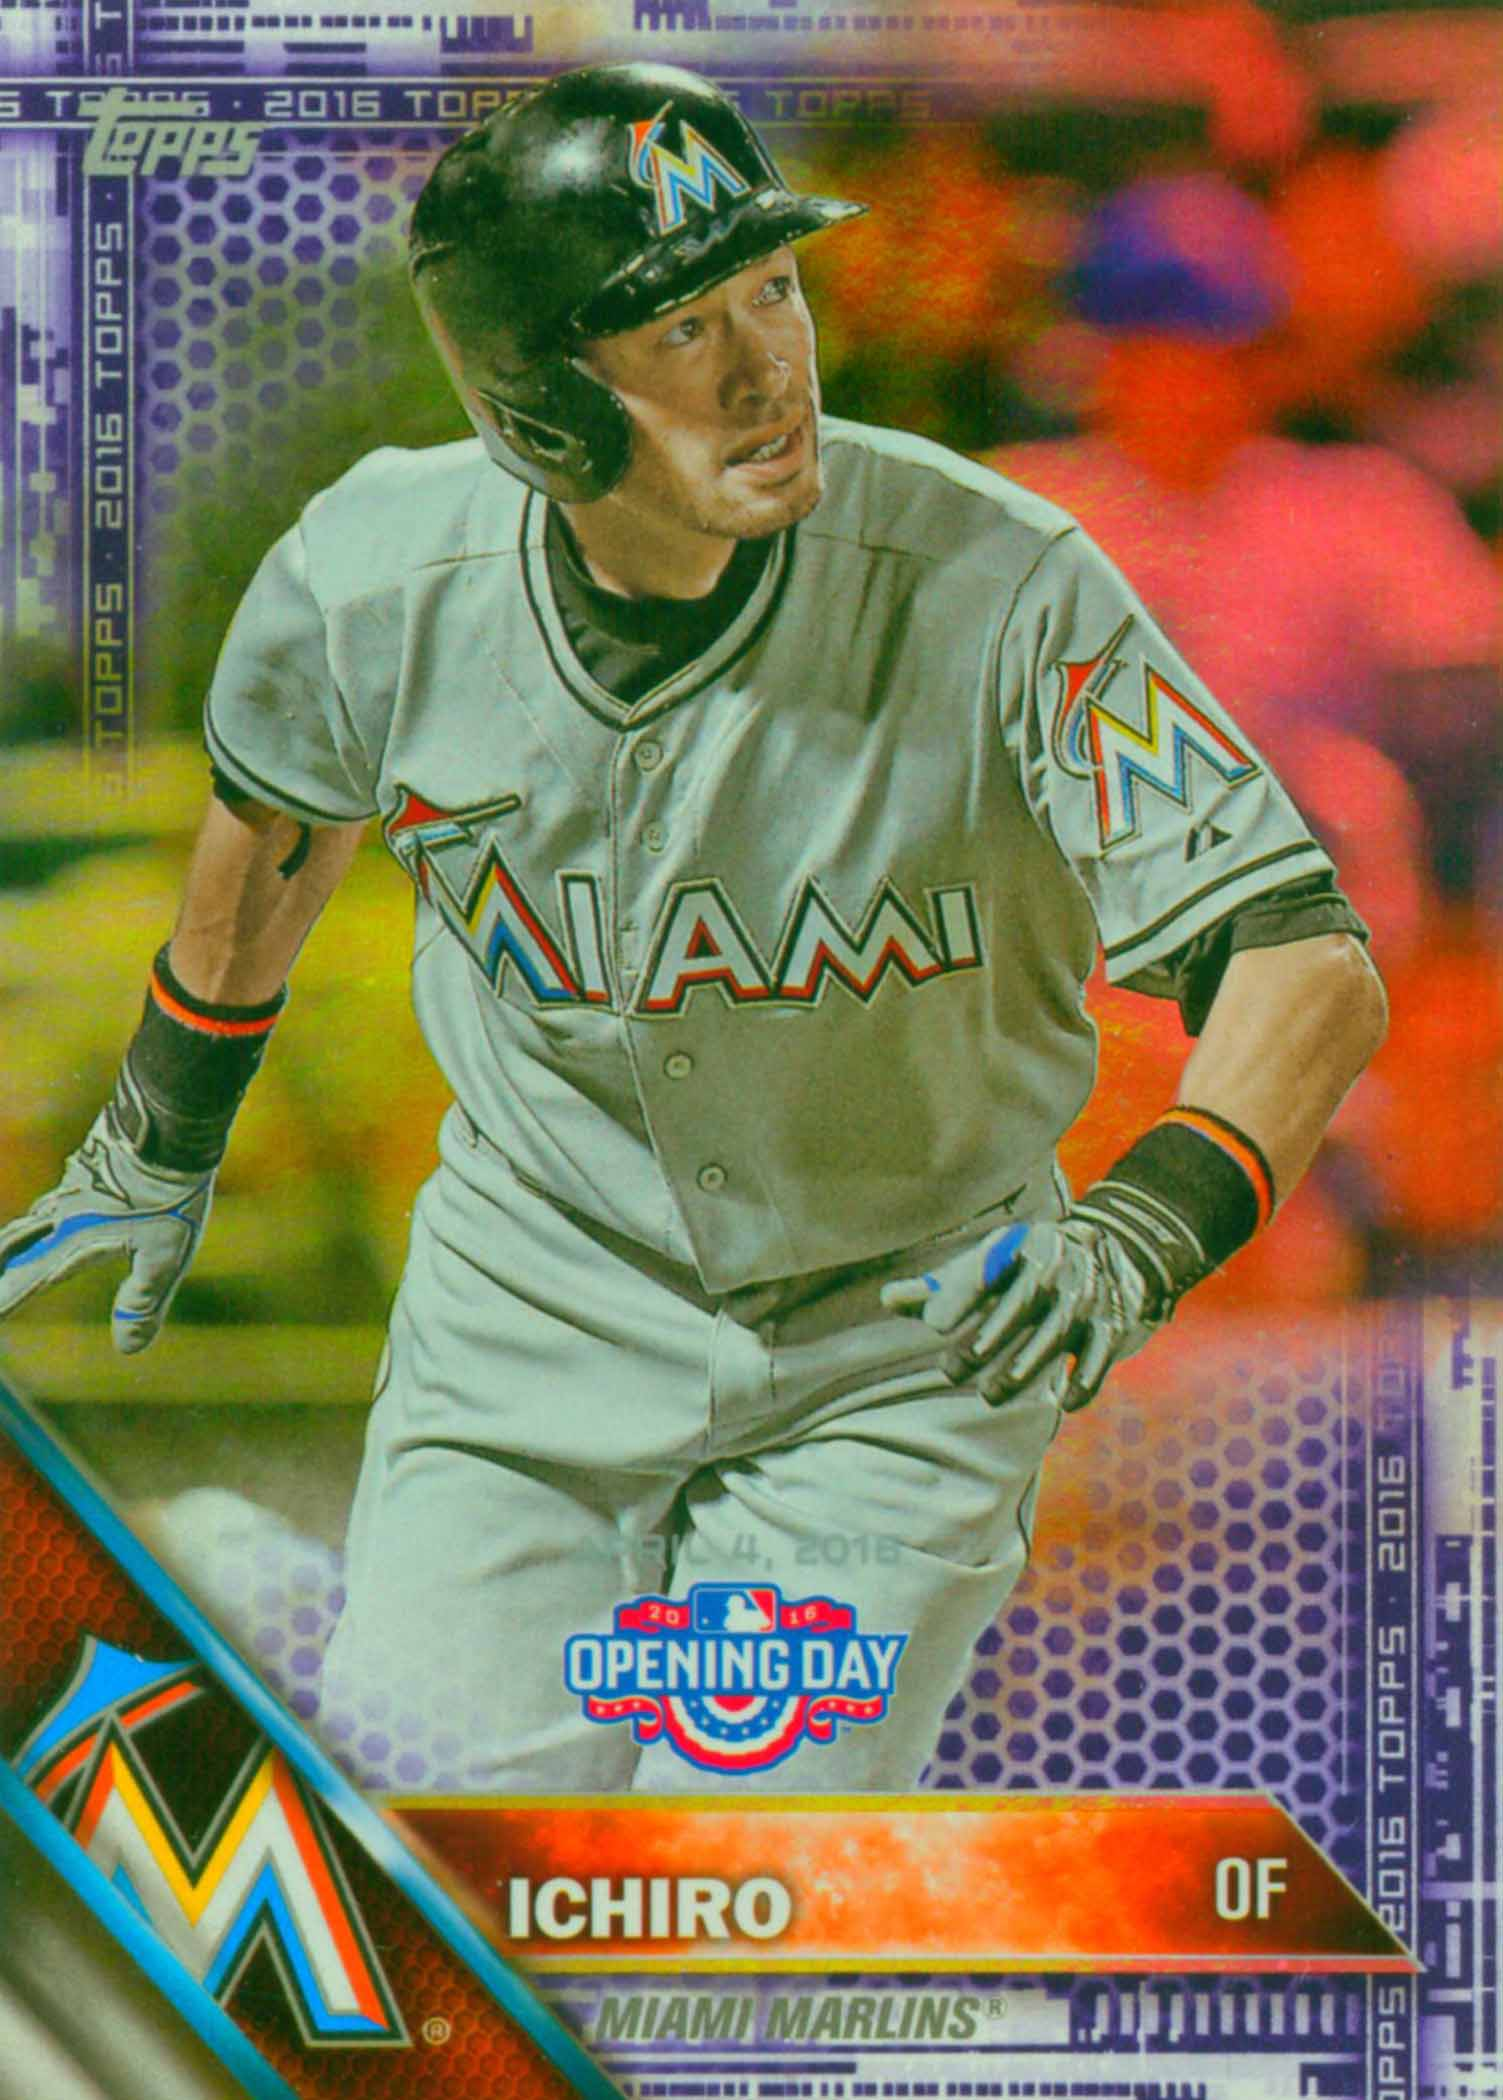 2015 Topps Heritage